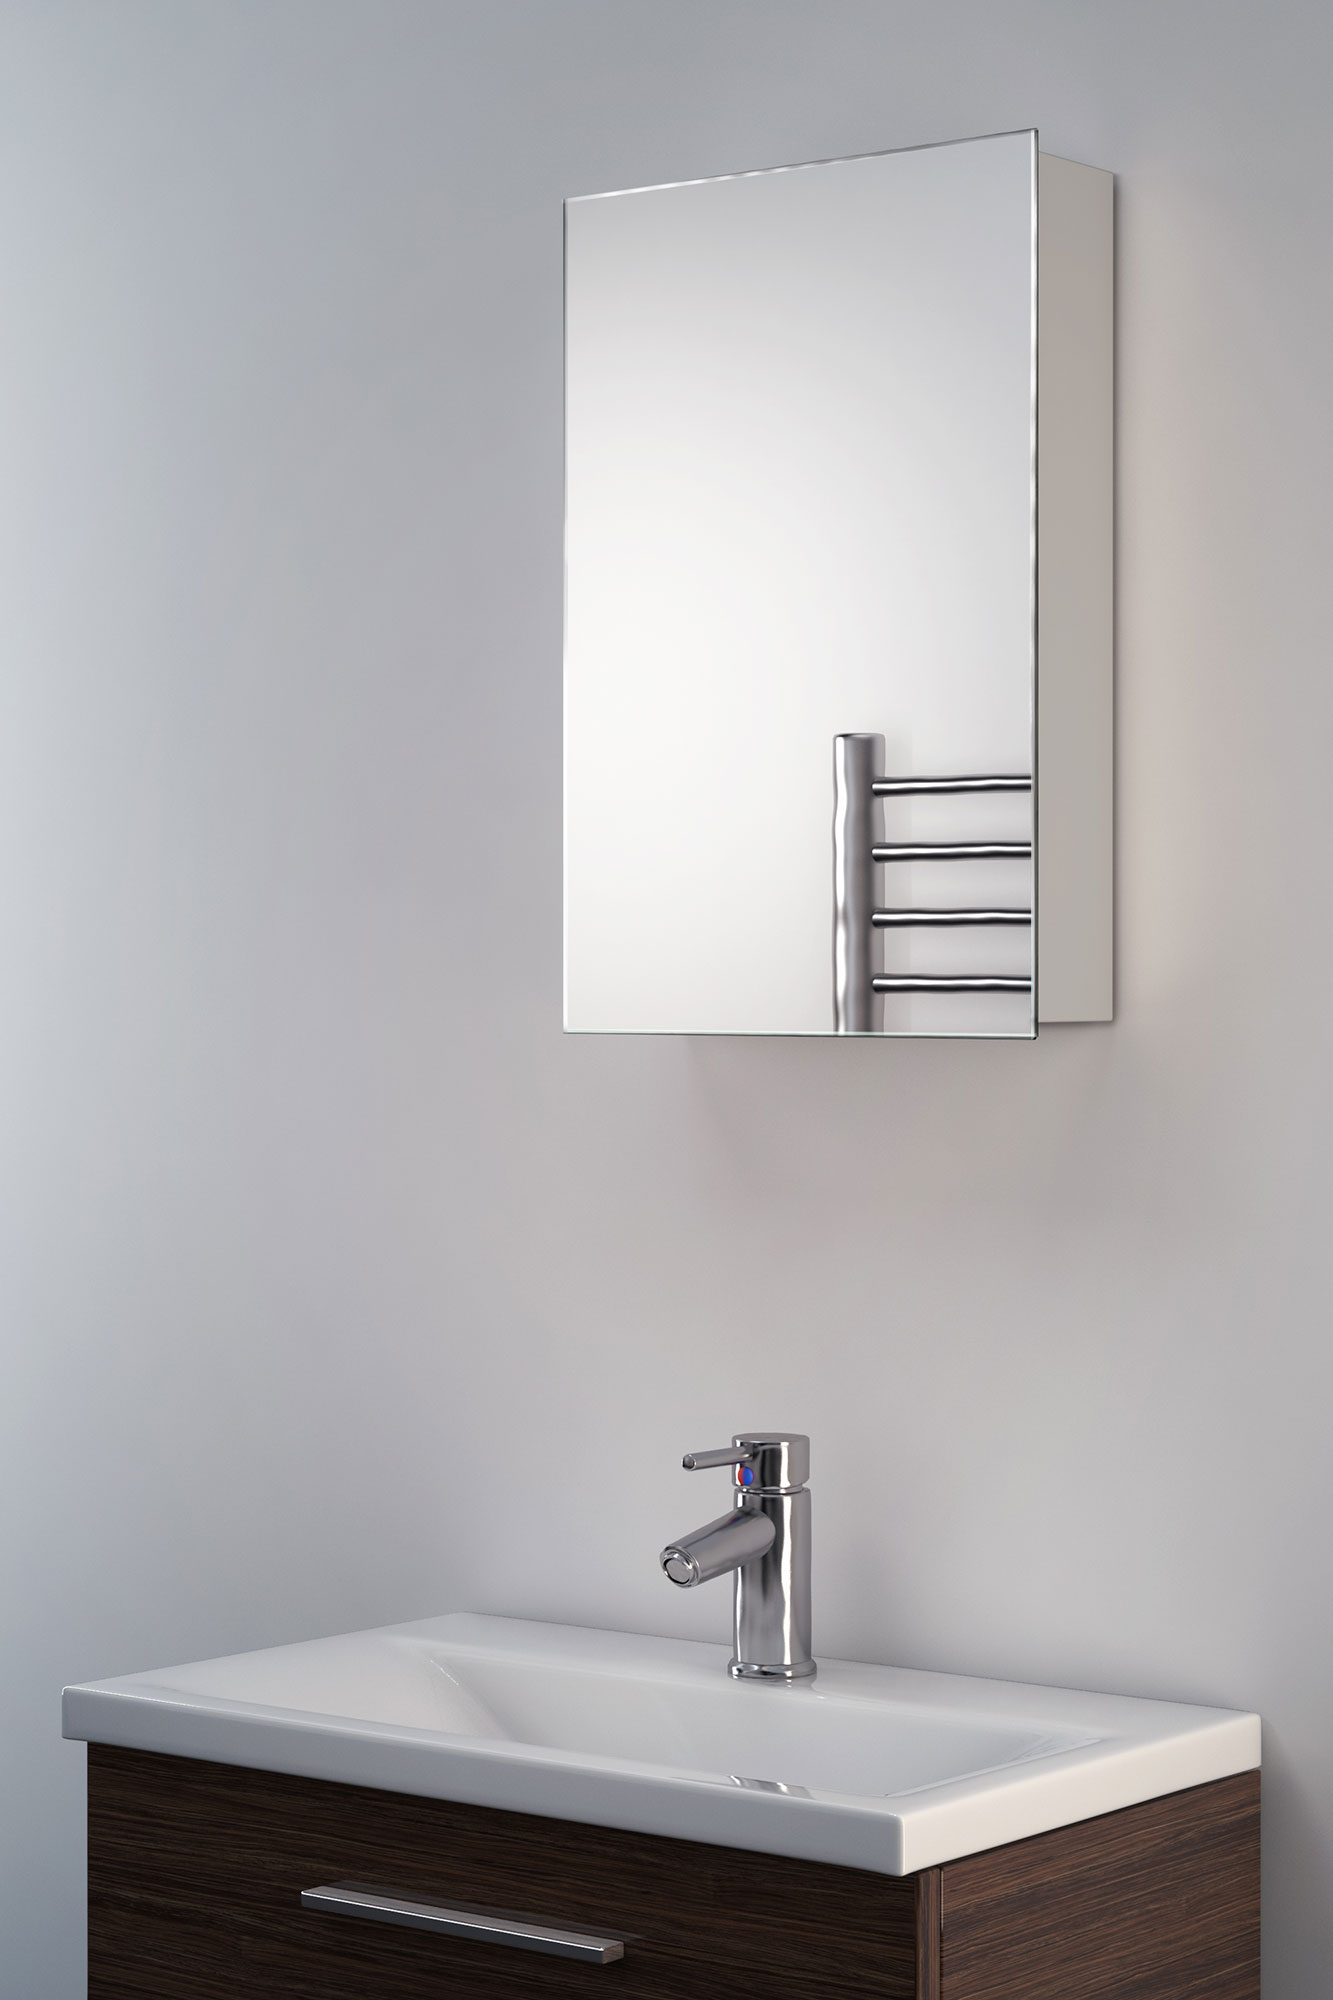 details about alban non illuminate d bathroom mirror cabinet k136